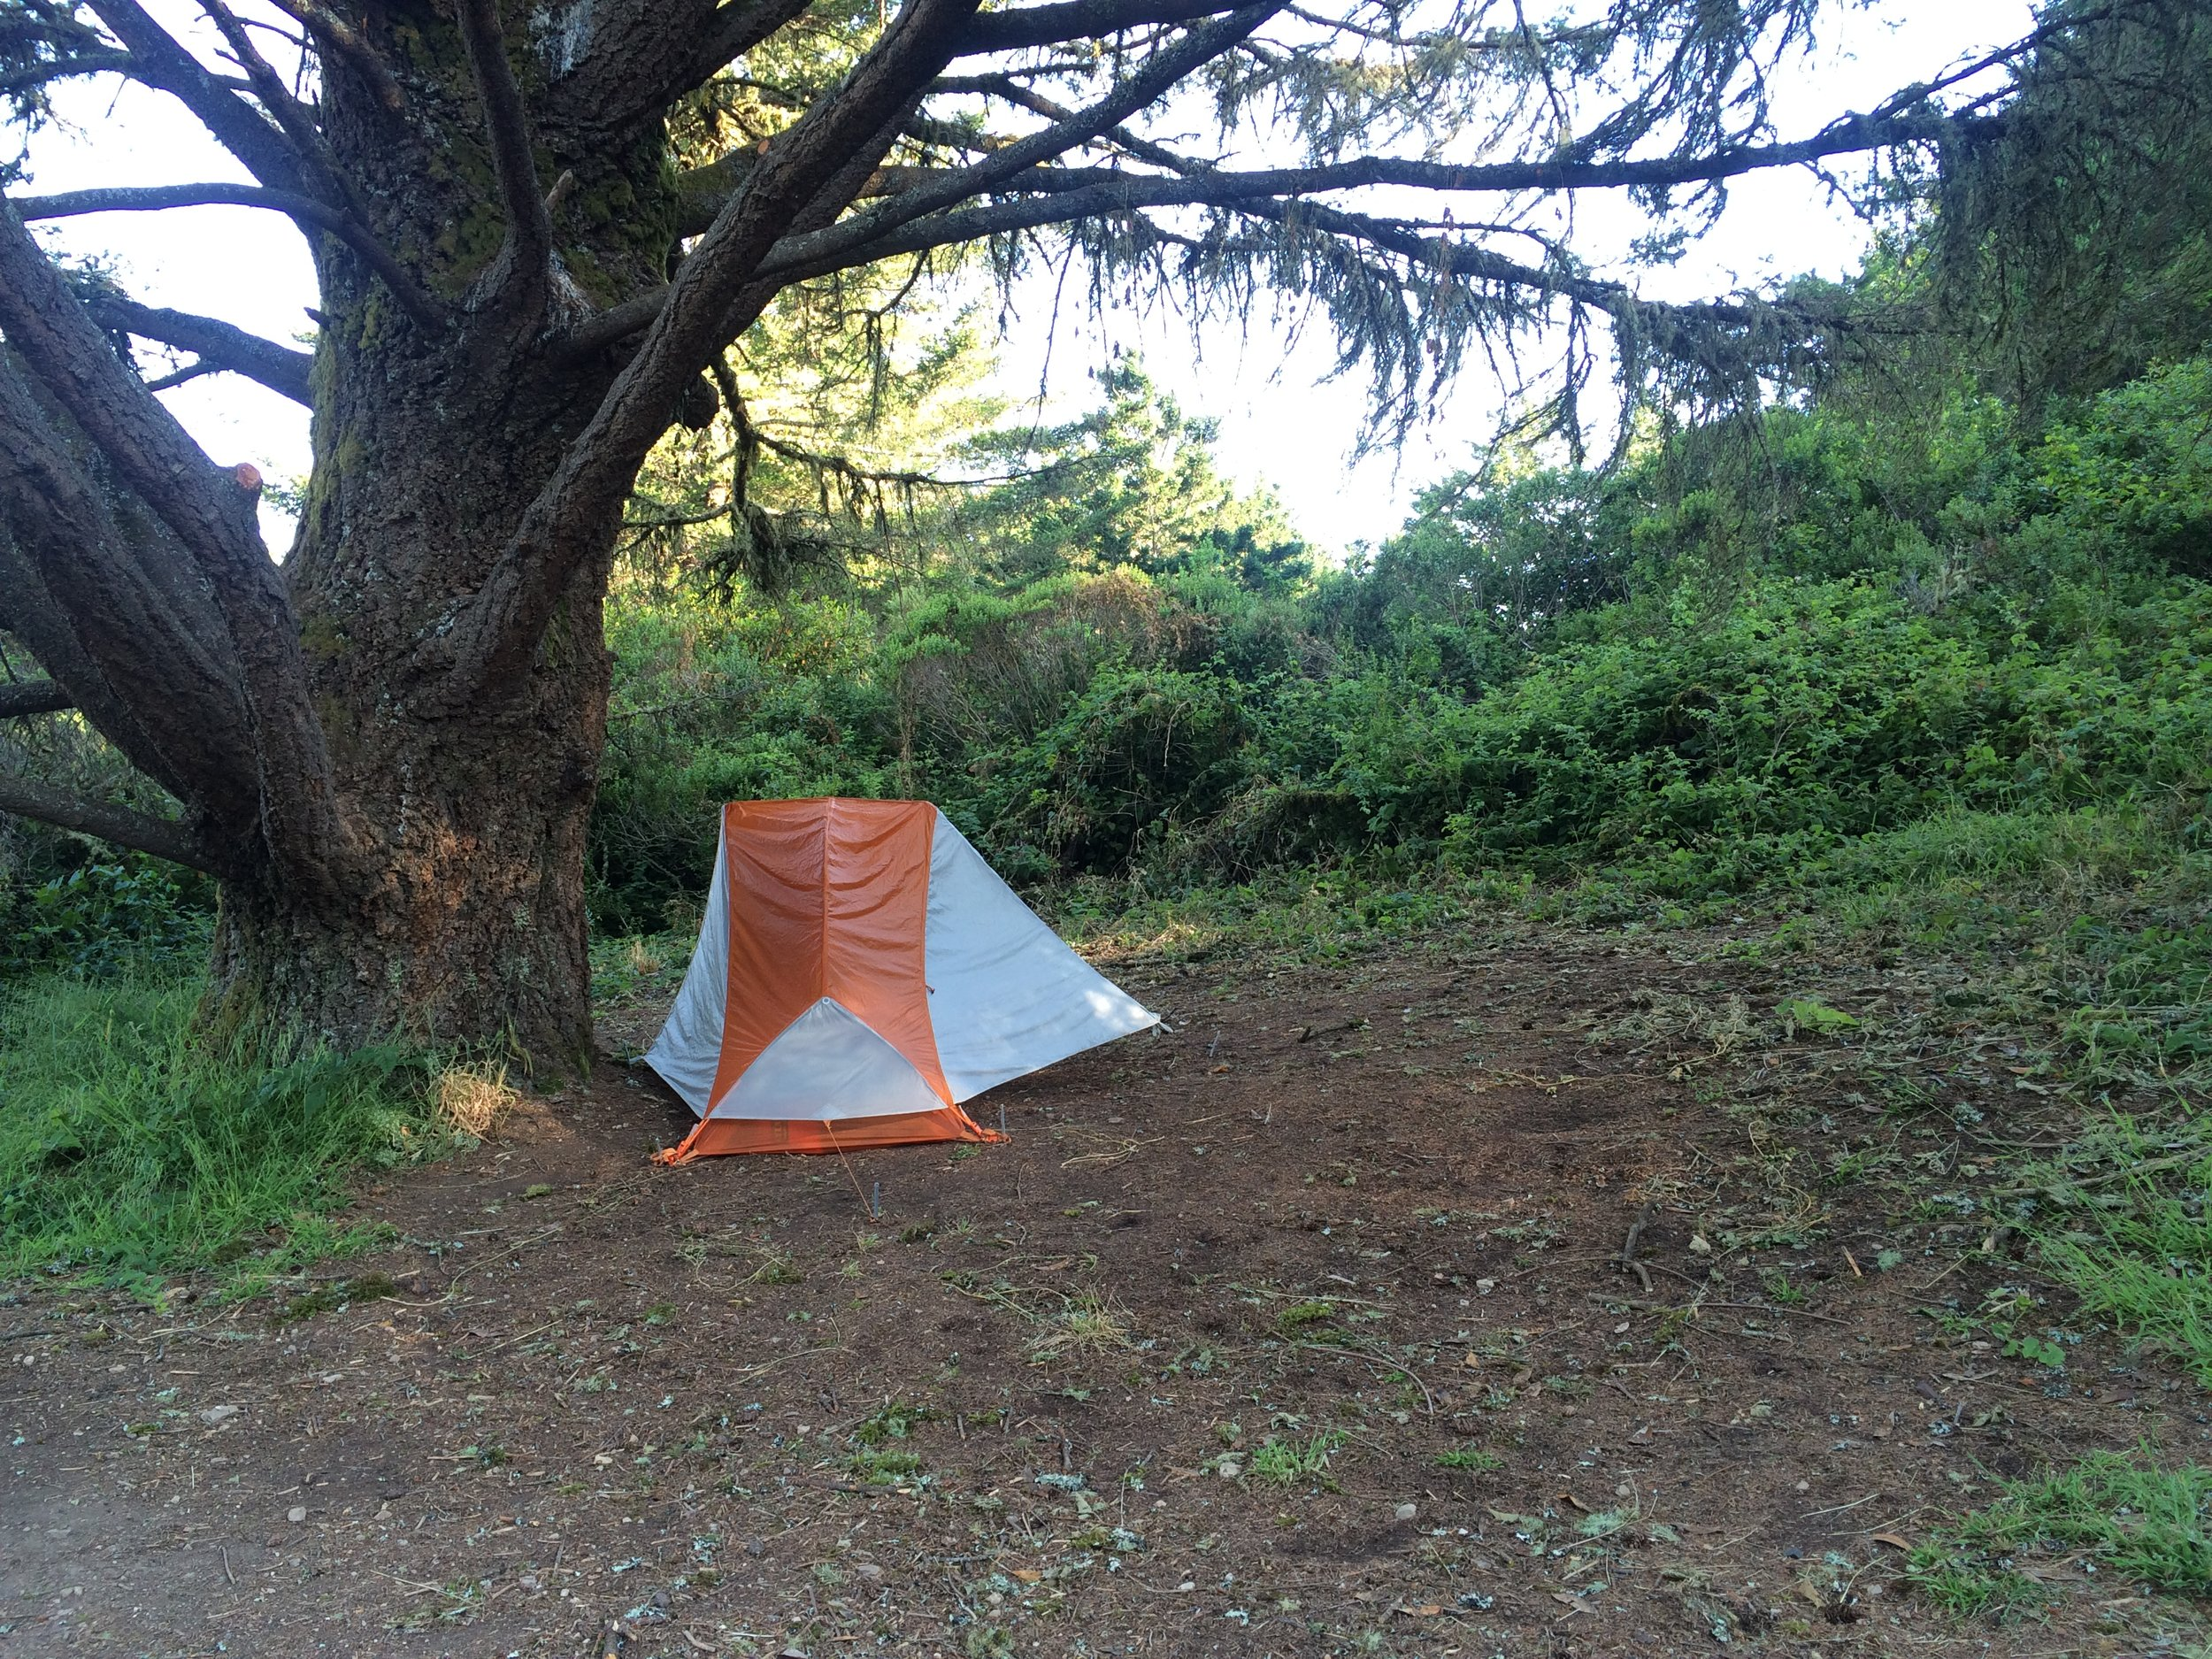 Setting up camp at Sky Camp, Point Reyes National Seashore. Image by Gitanjali Bhattacharjee.